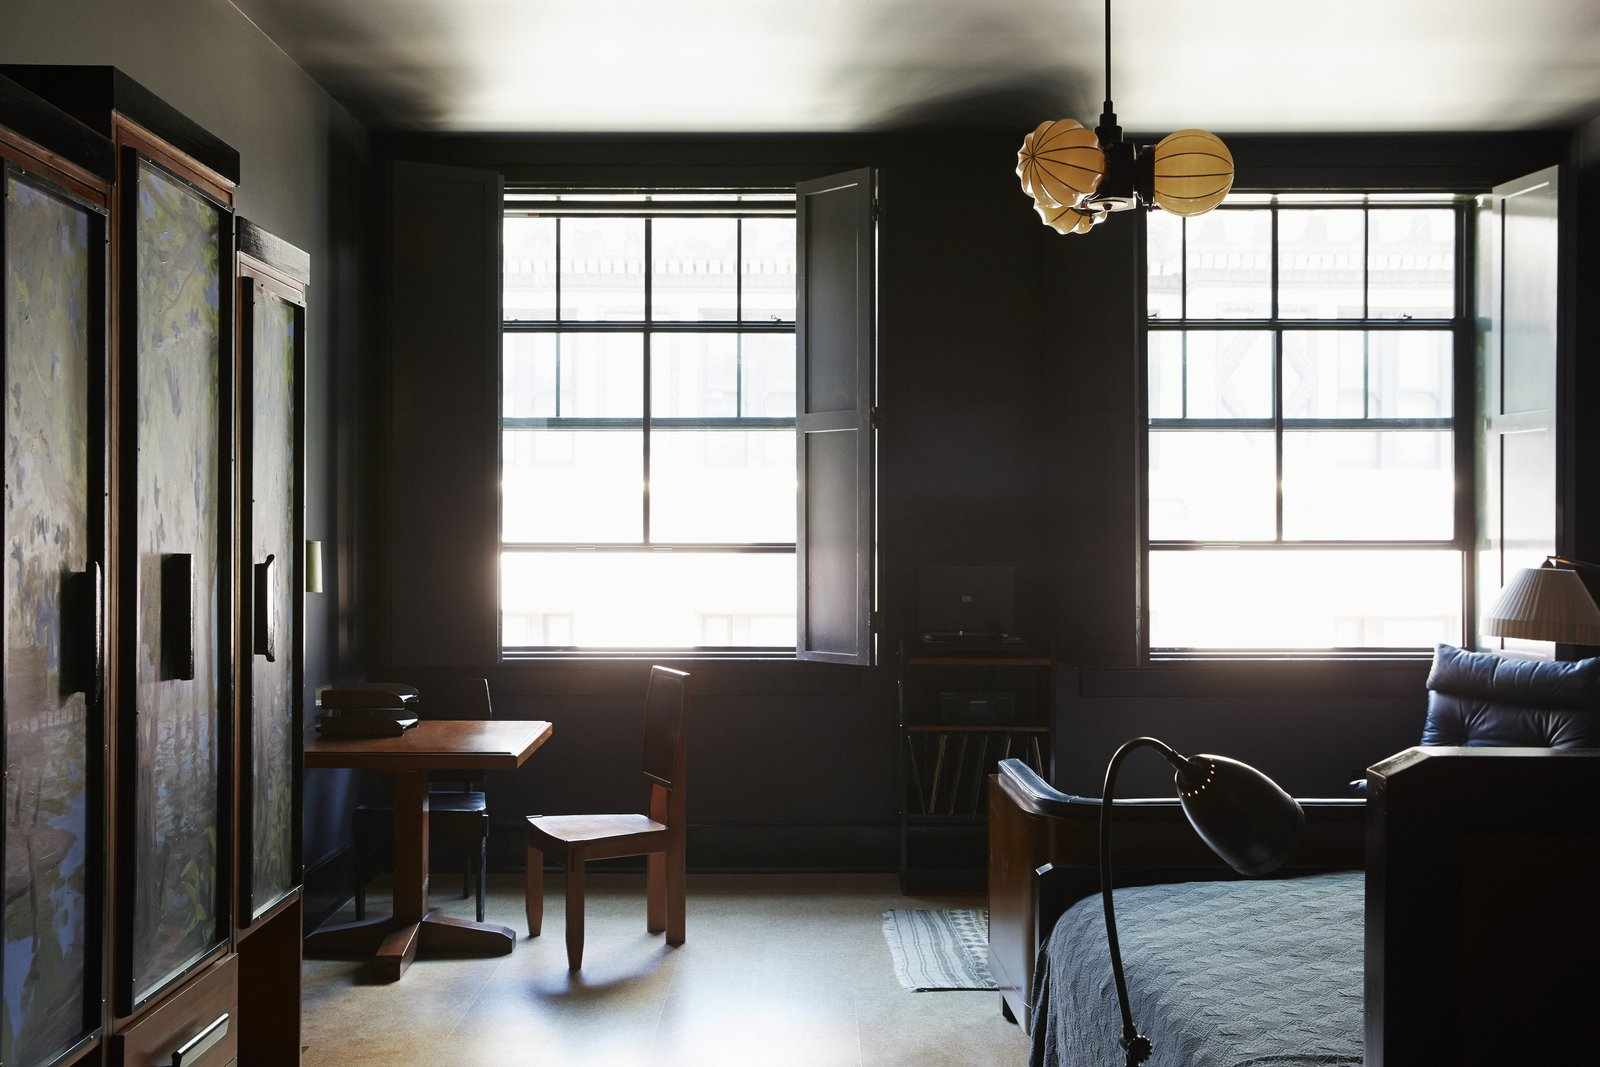 #acehotel #neworleans #louisiana #hospitality #classic #modern  Photo courtesy of Ace Hotel, New Orleans